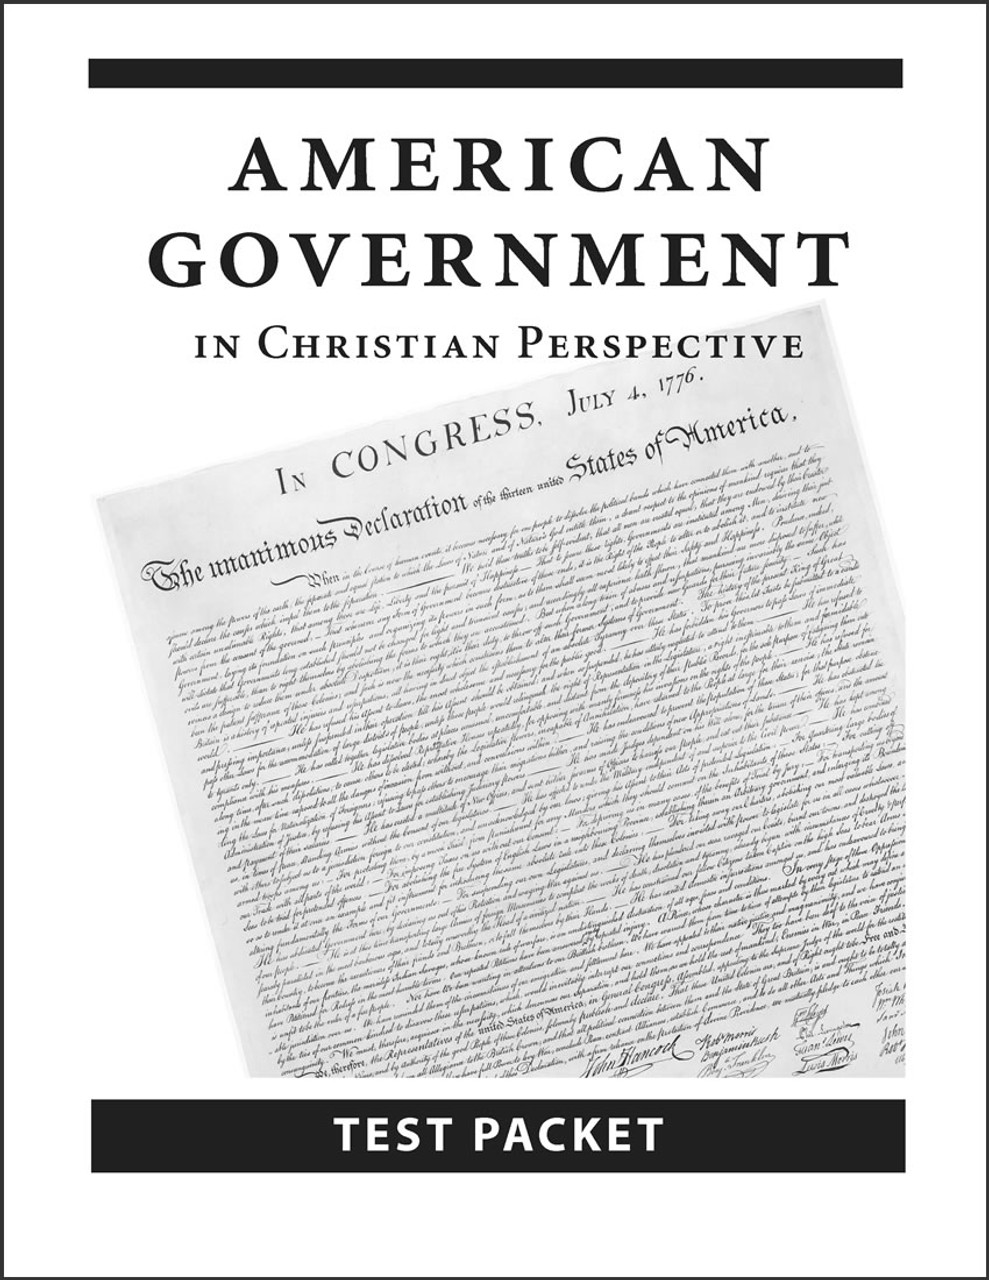 American Government in Christian Perspective, 3rd edition - Test Packet